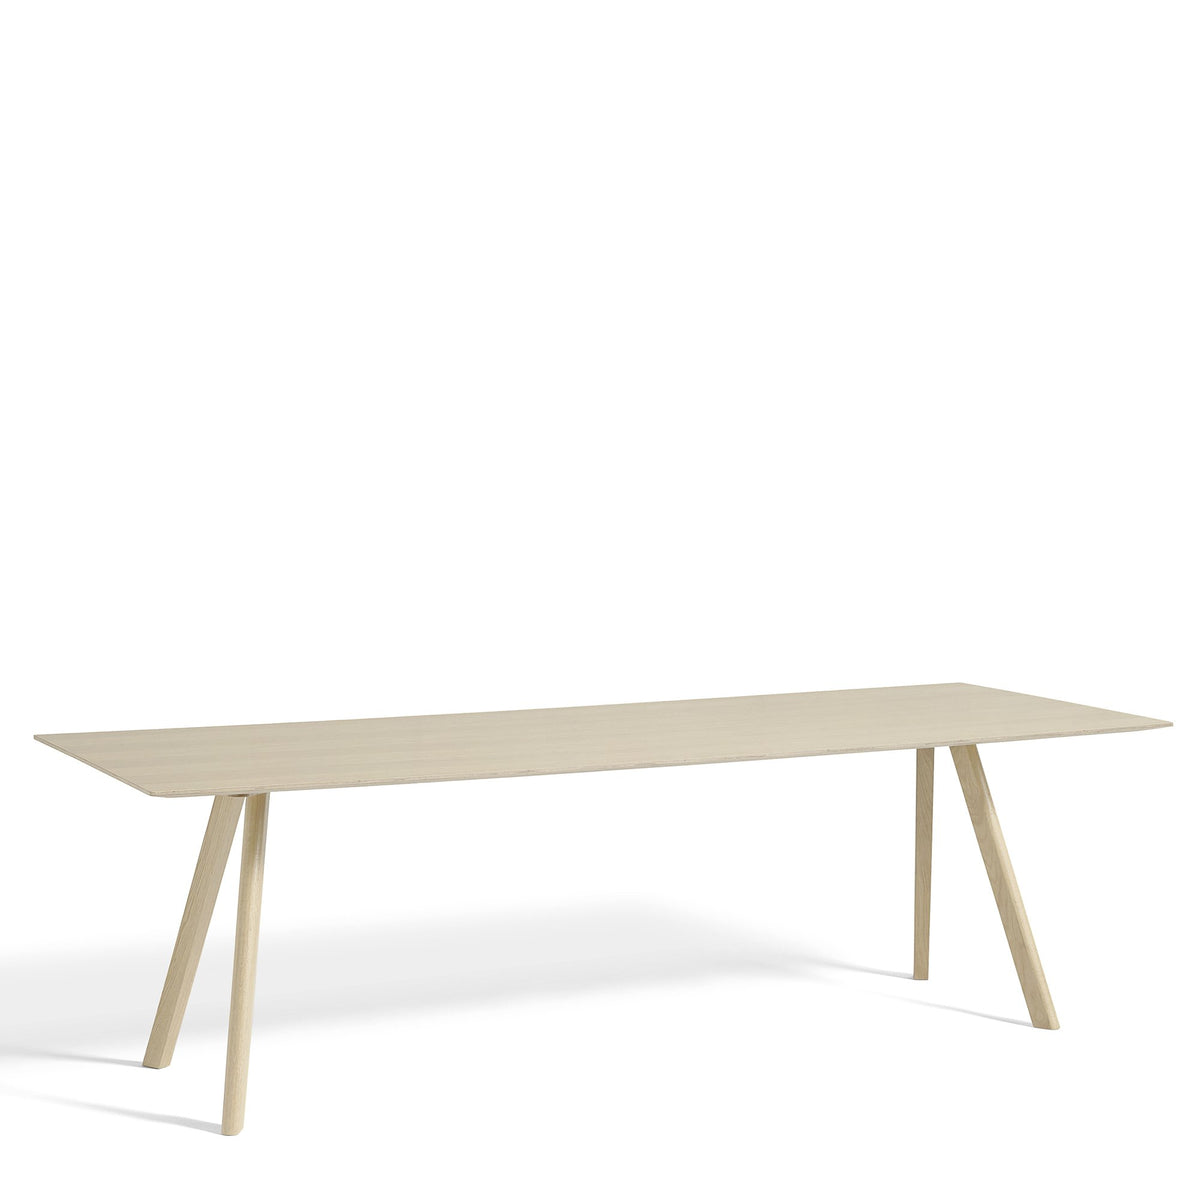 HAY CPH Table 2500mm with Matt Lacquered Oak Base